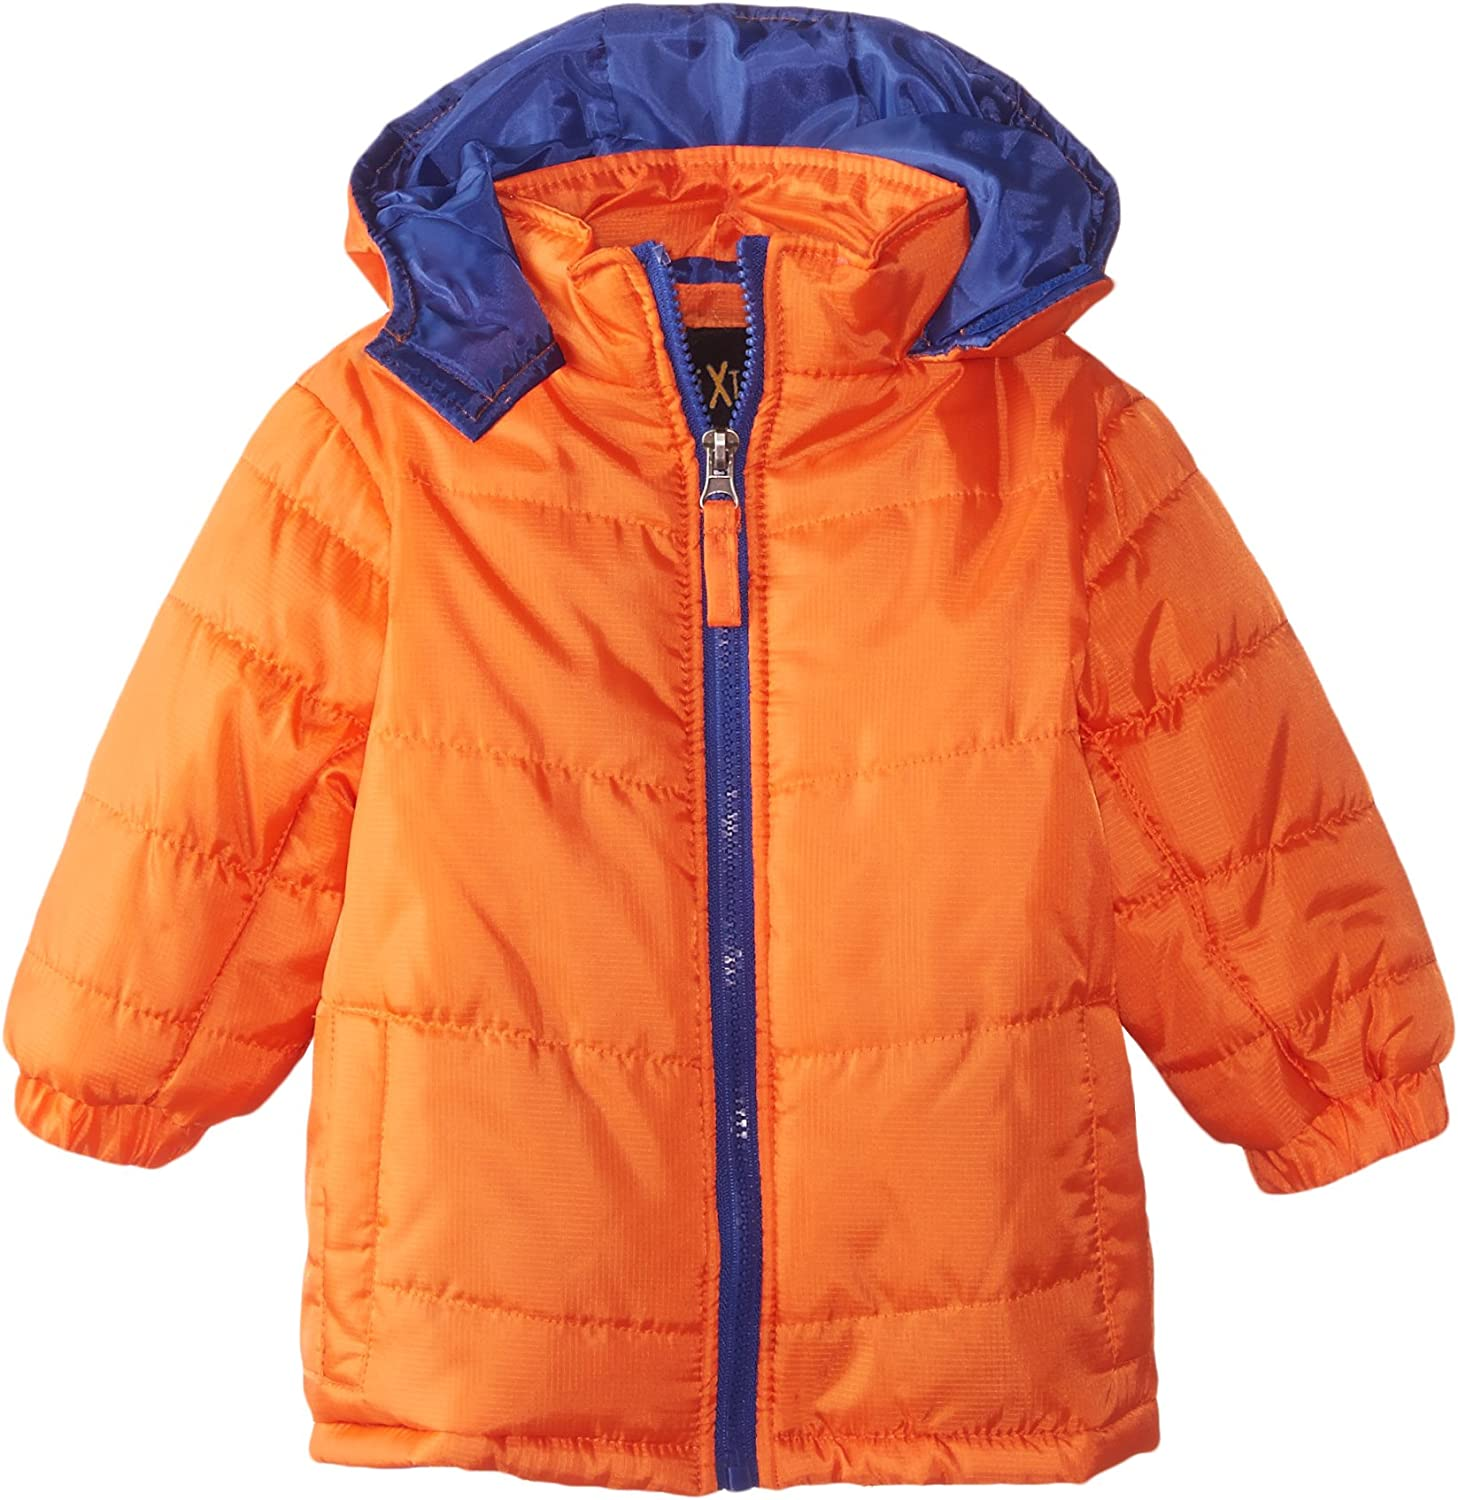 iXtreme Baby Boys' Ripstop Puffer With Pop Color Zipper